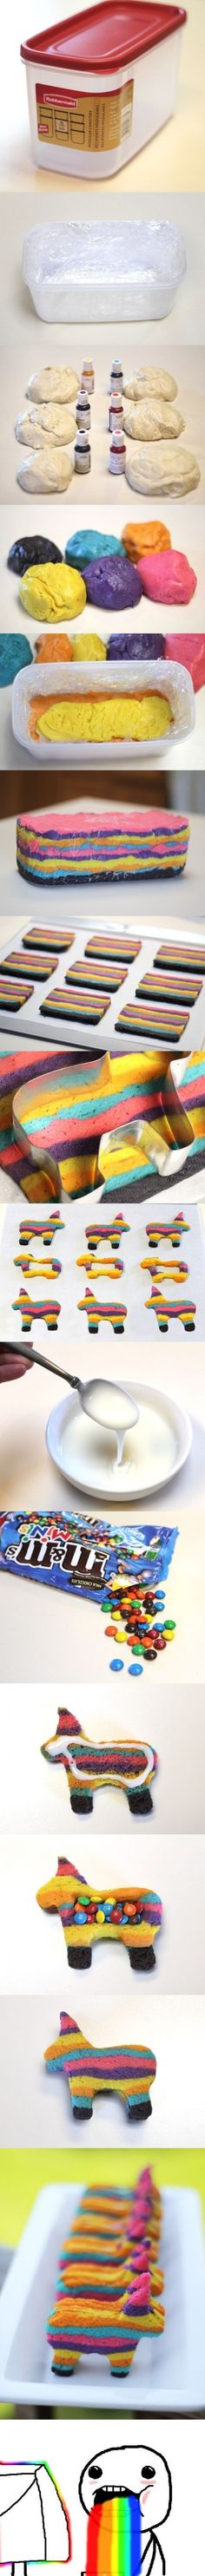 Pinata Cookies! Minus the weird thing at the bottom lol I just died!